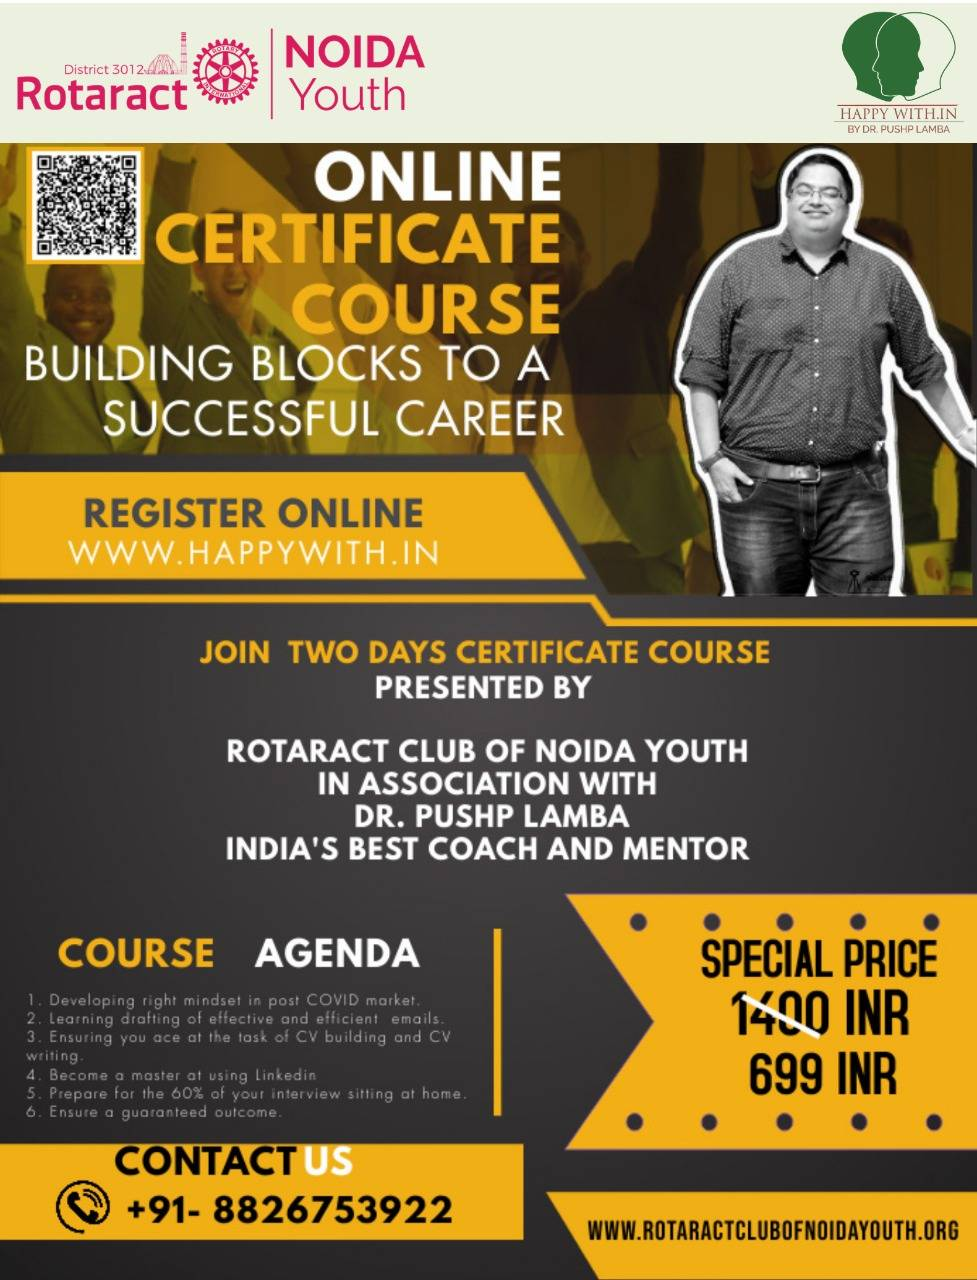 Online certificate course on Building Blocks to a Successful Career by Rotaract club of Noida Youth